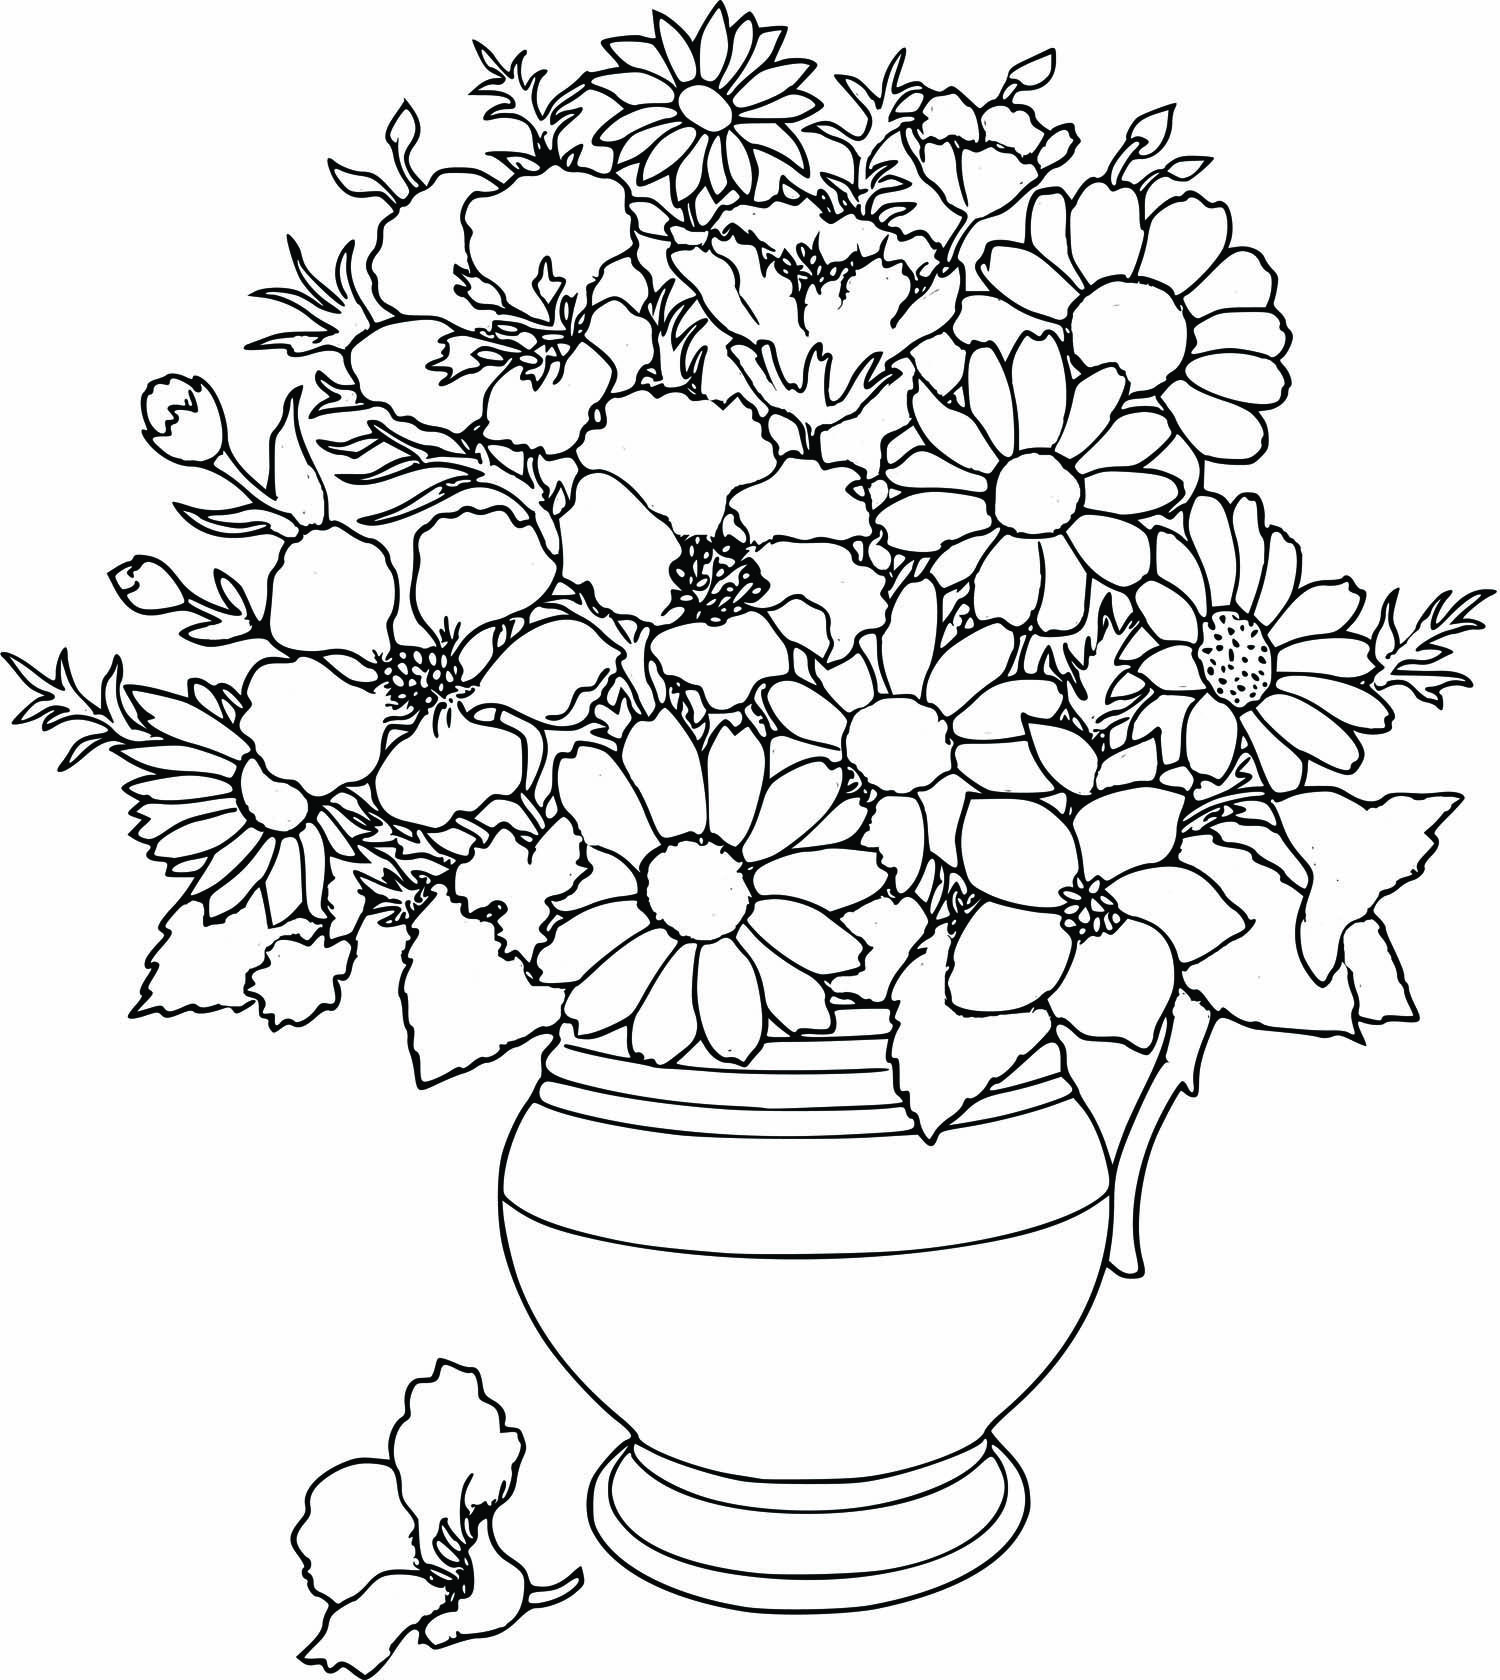 Colouring in pictures of flowers - Free Beautifull Flower Coloring Pages